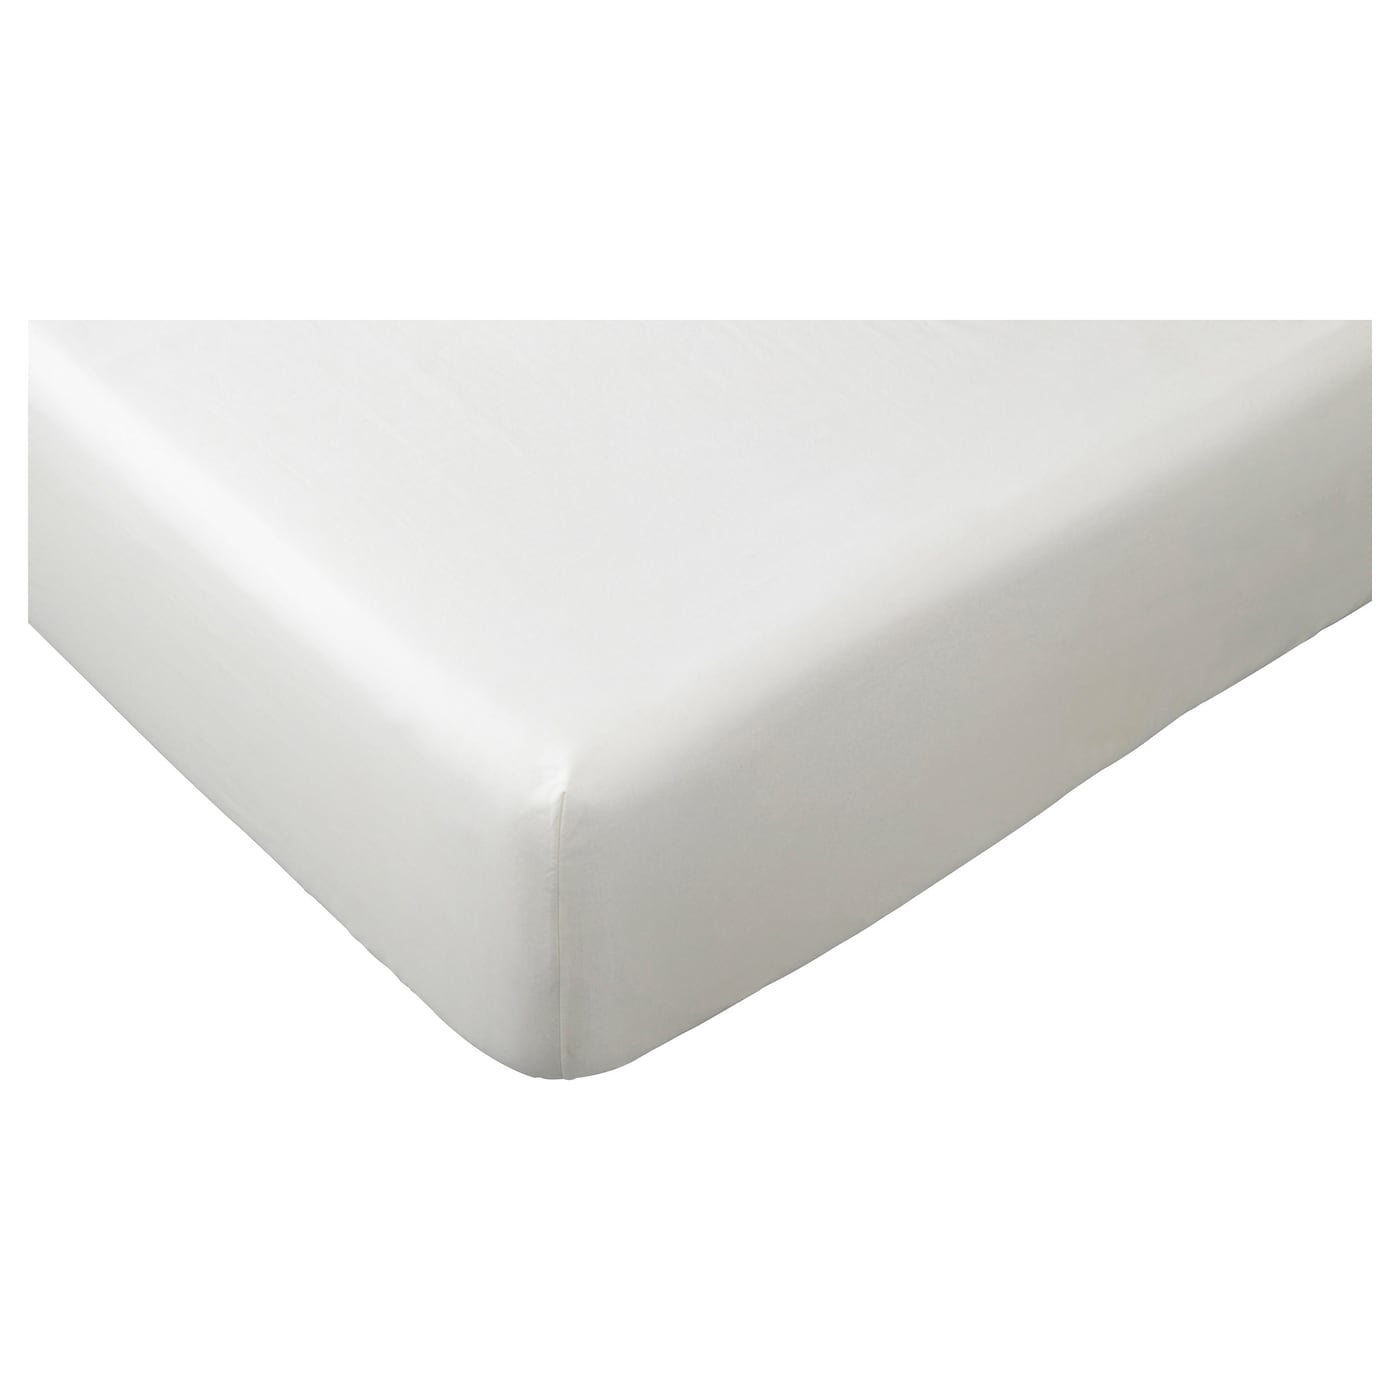 IKEA FÄRGMÅRA fitted sheet Cotton, feels soft and nice against your skin.